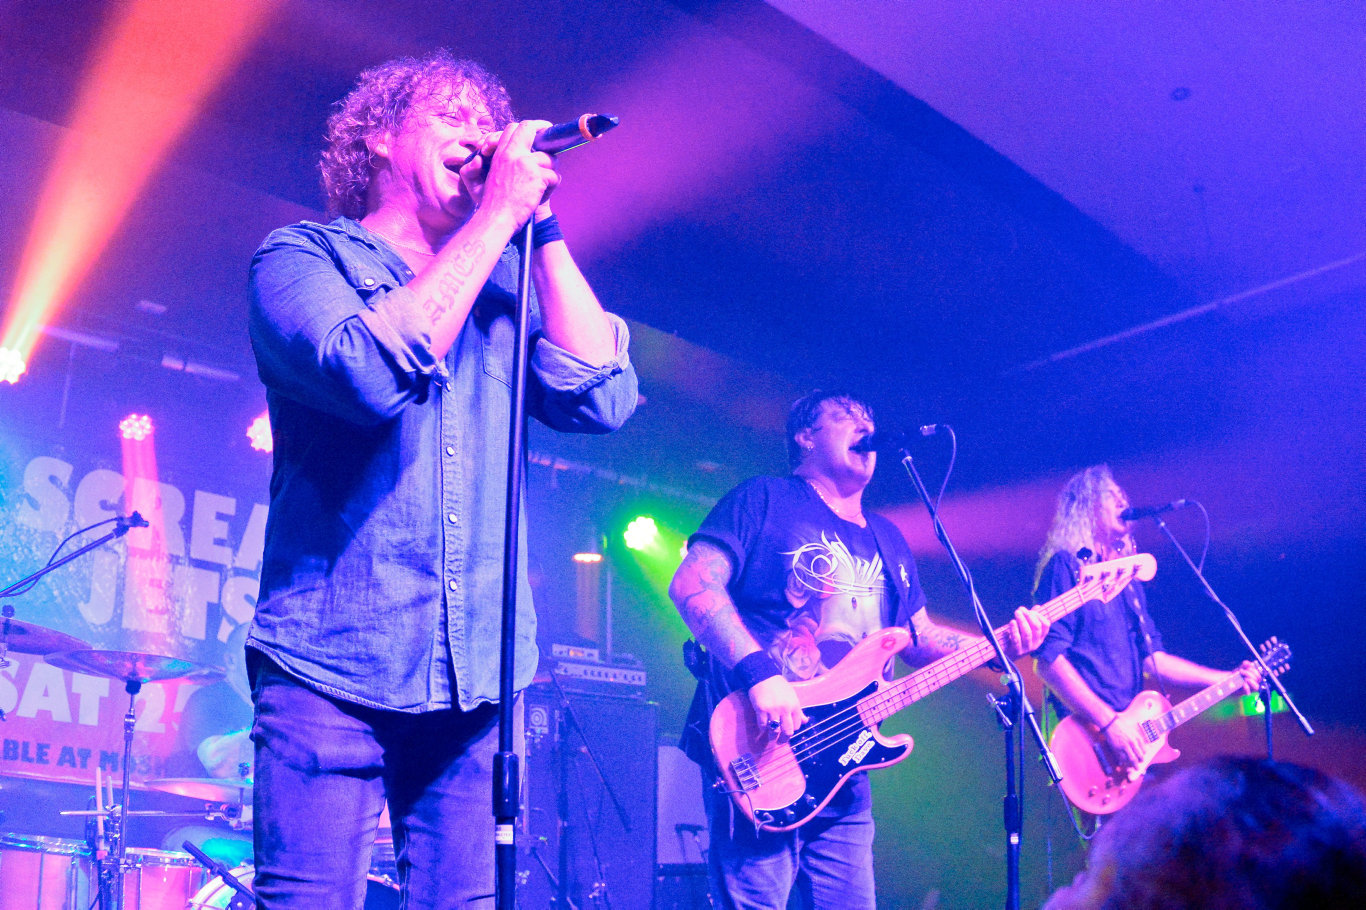 Dave Gleeson on vocals - The Screaming Jets live at Harvey Road Tavern.